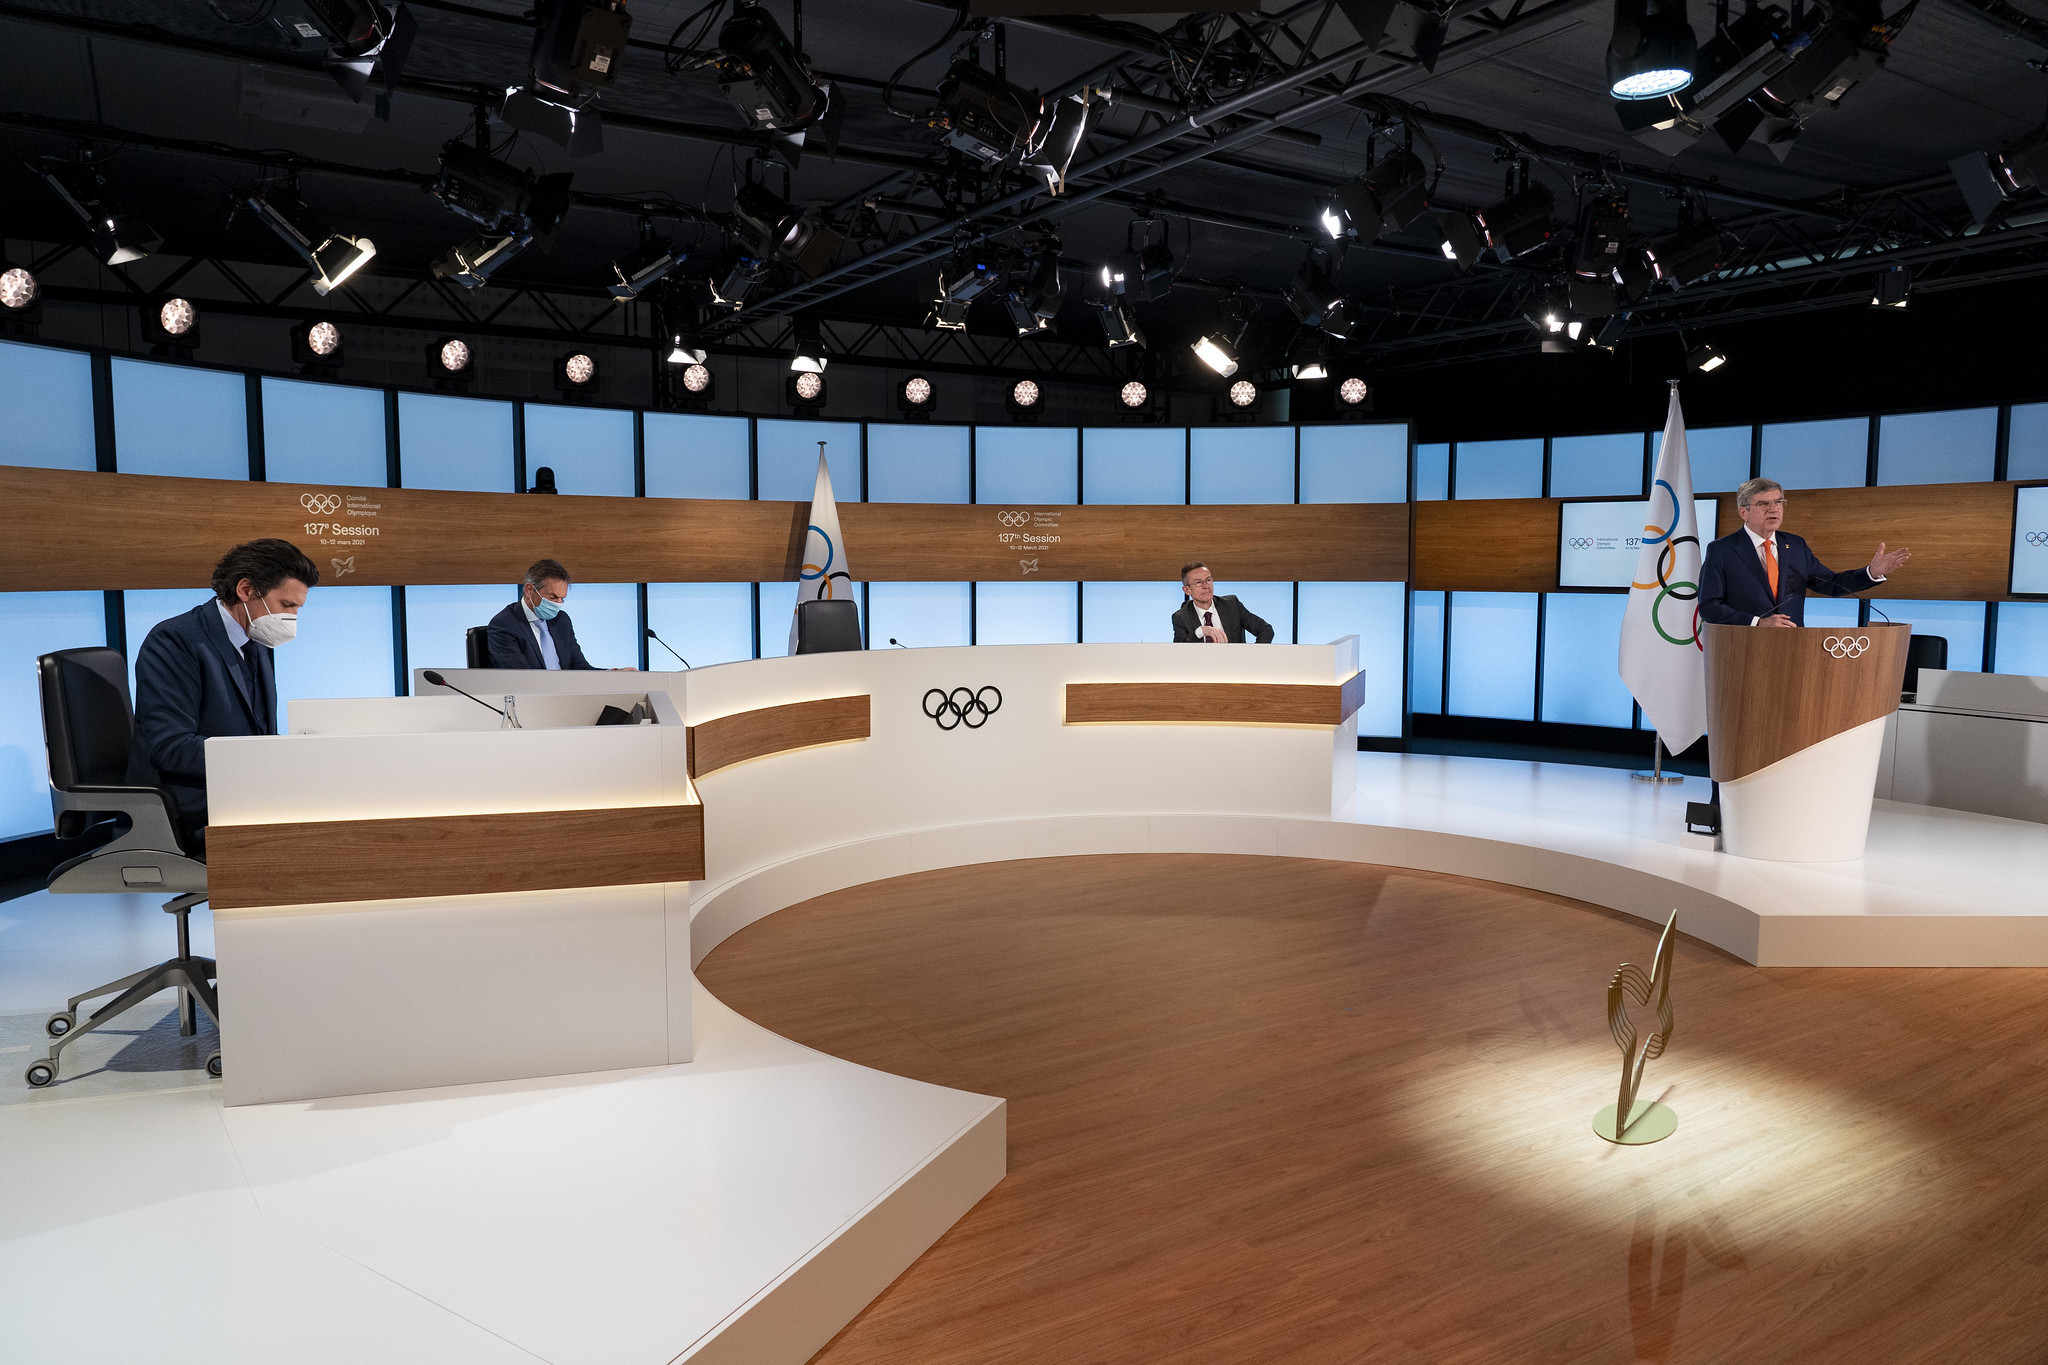 The IOC President warned the affects of the COVID-19 crisis would continue for the foreseeable future ©IOC